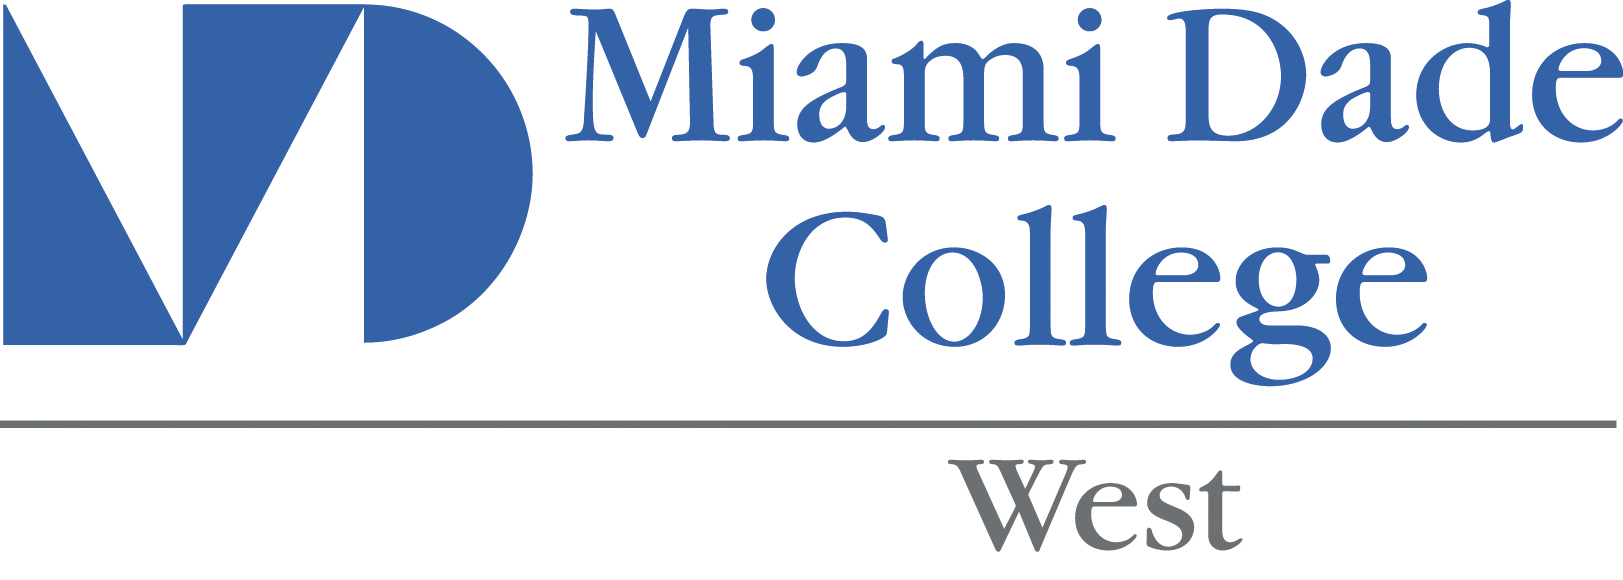 Miami Dade College West, a Doral Chamber of Commerce member.